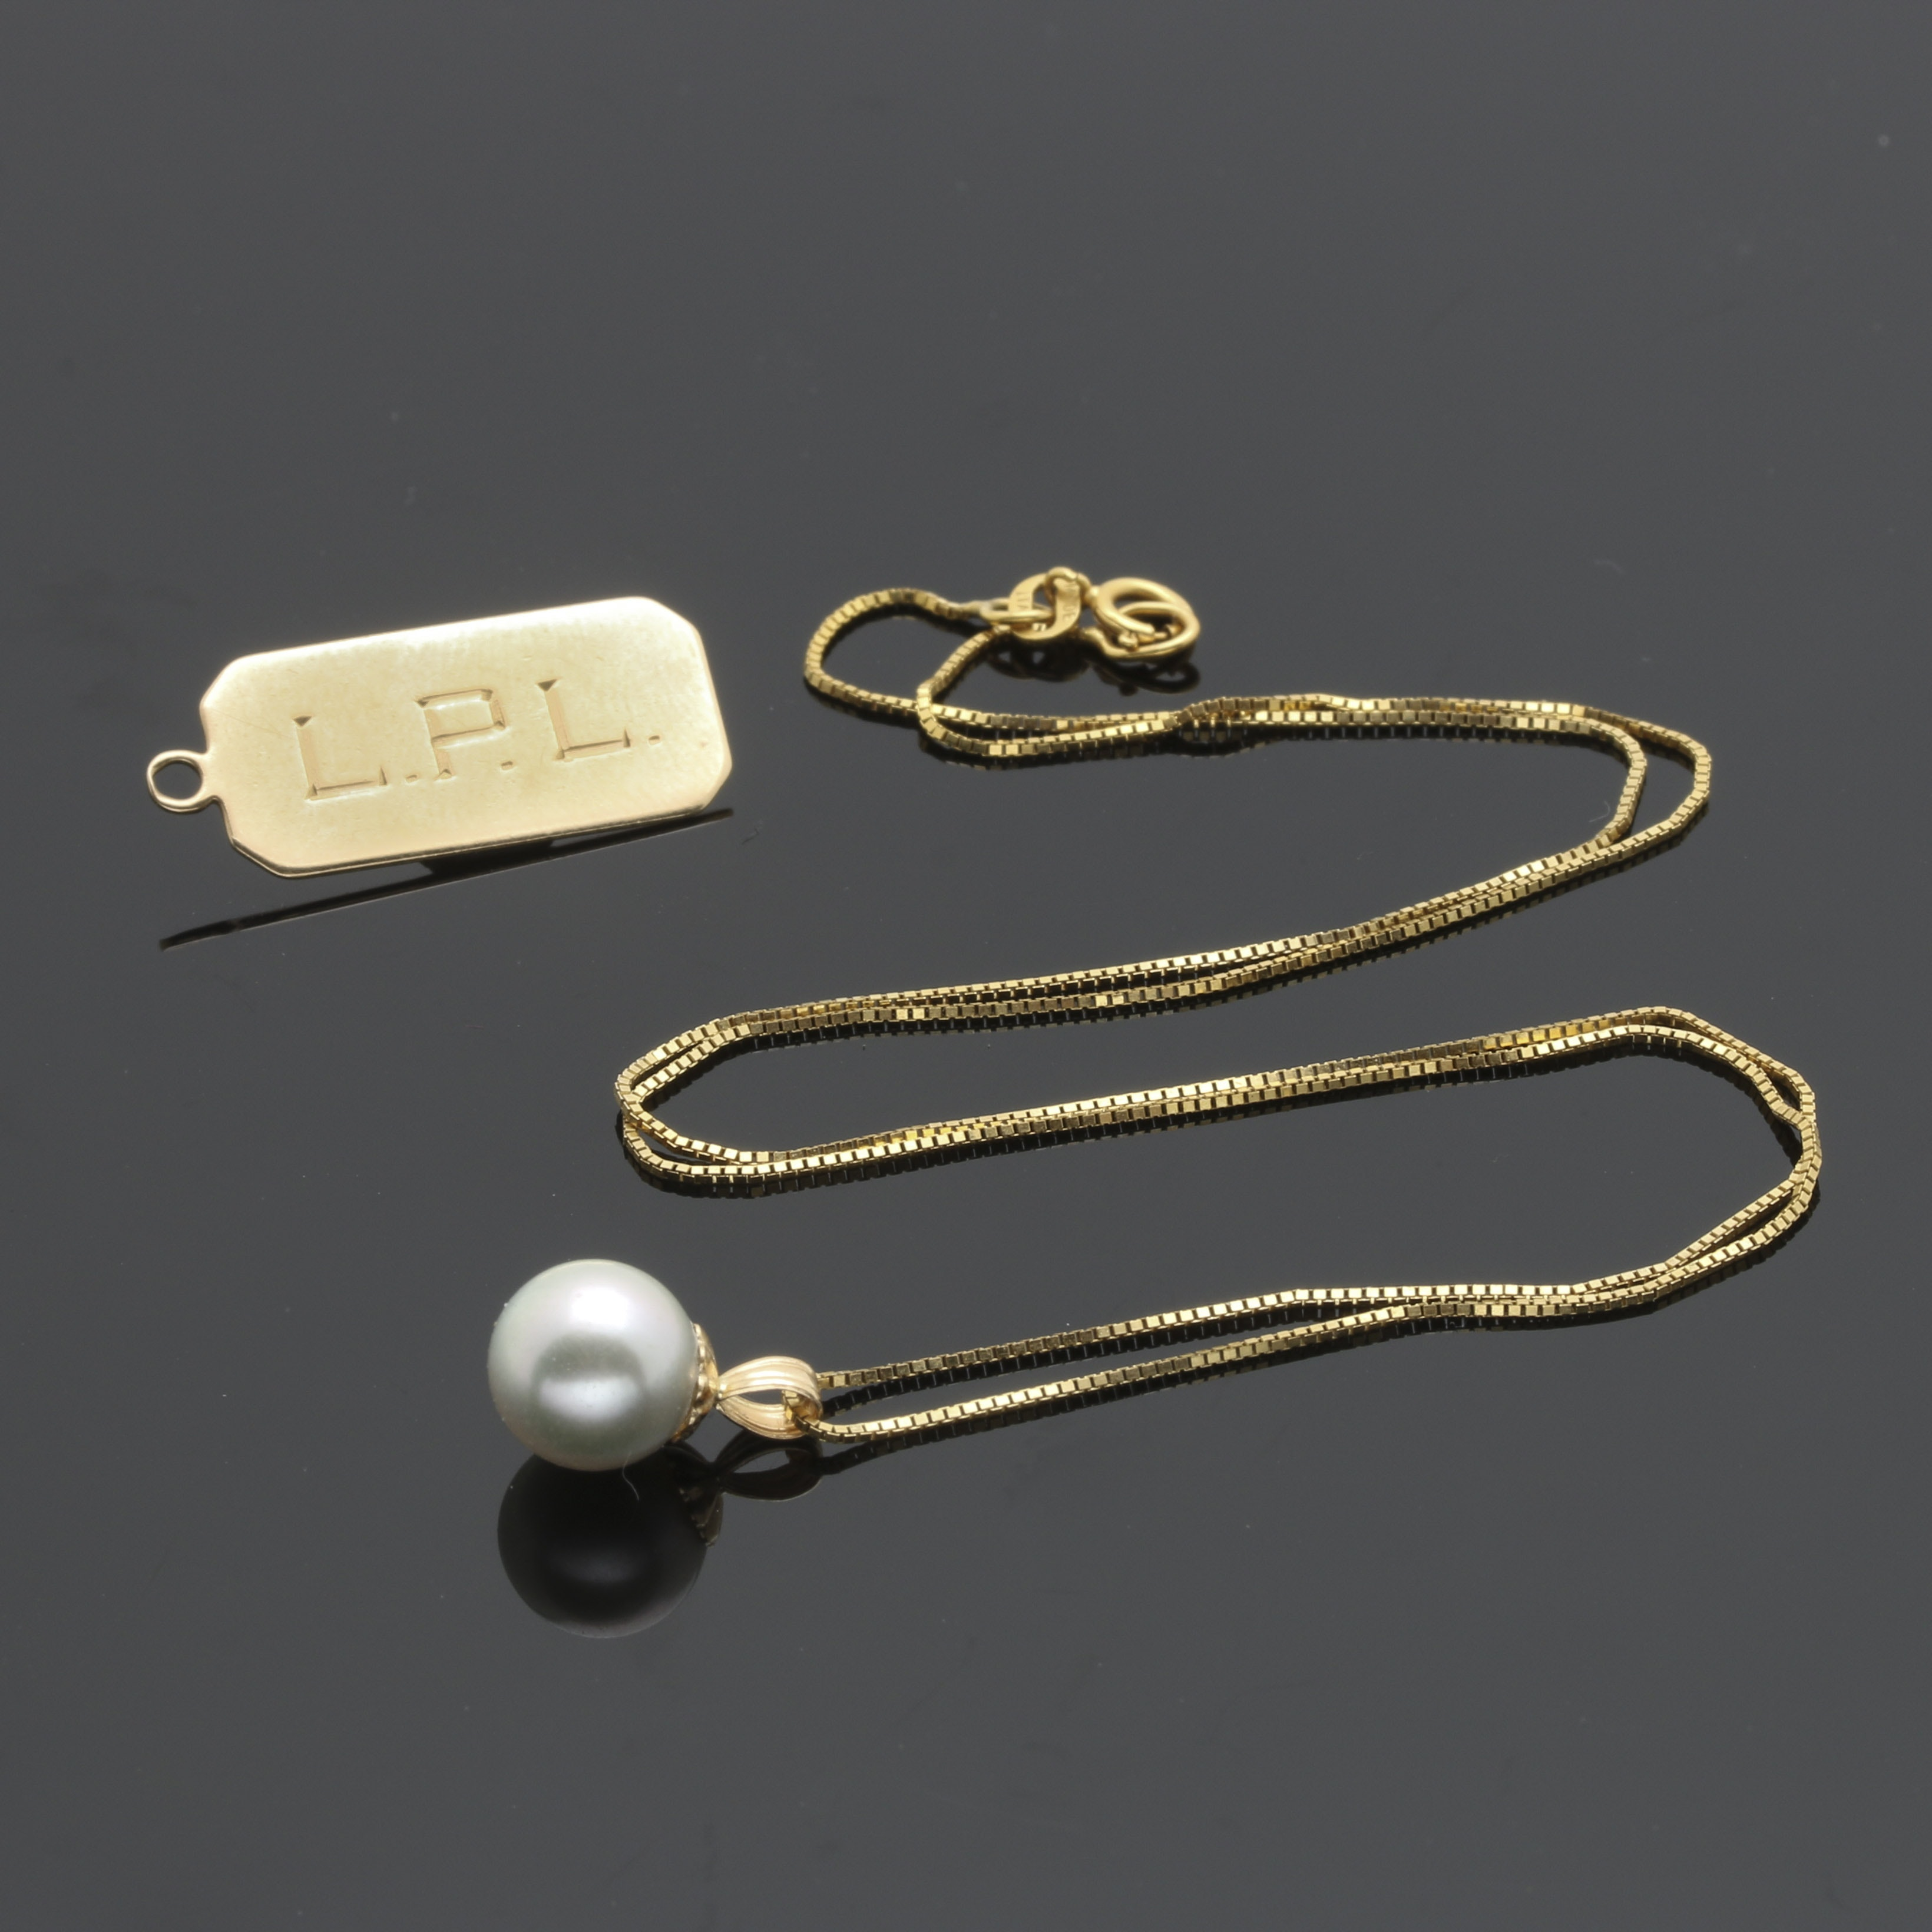 14K Yellow Gold Peal Necklace and 14K Gold Tag